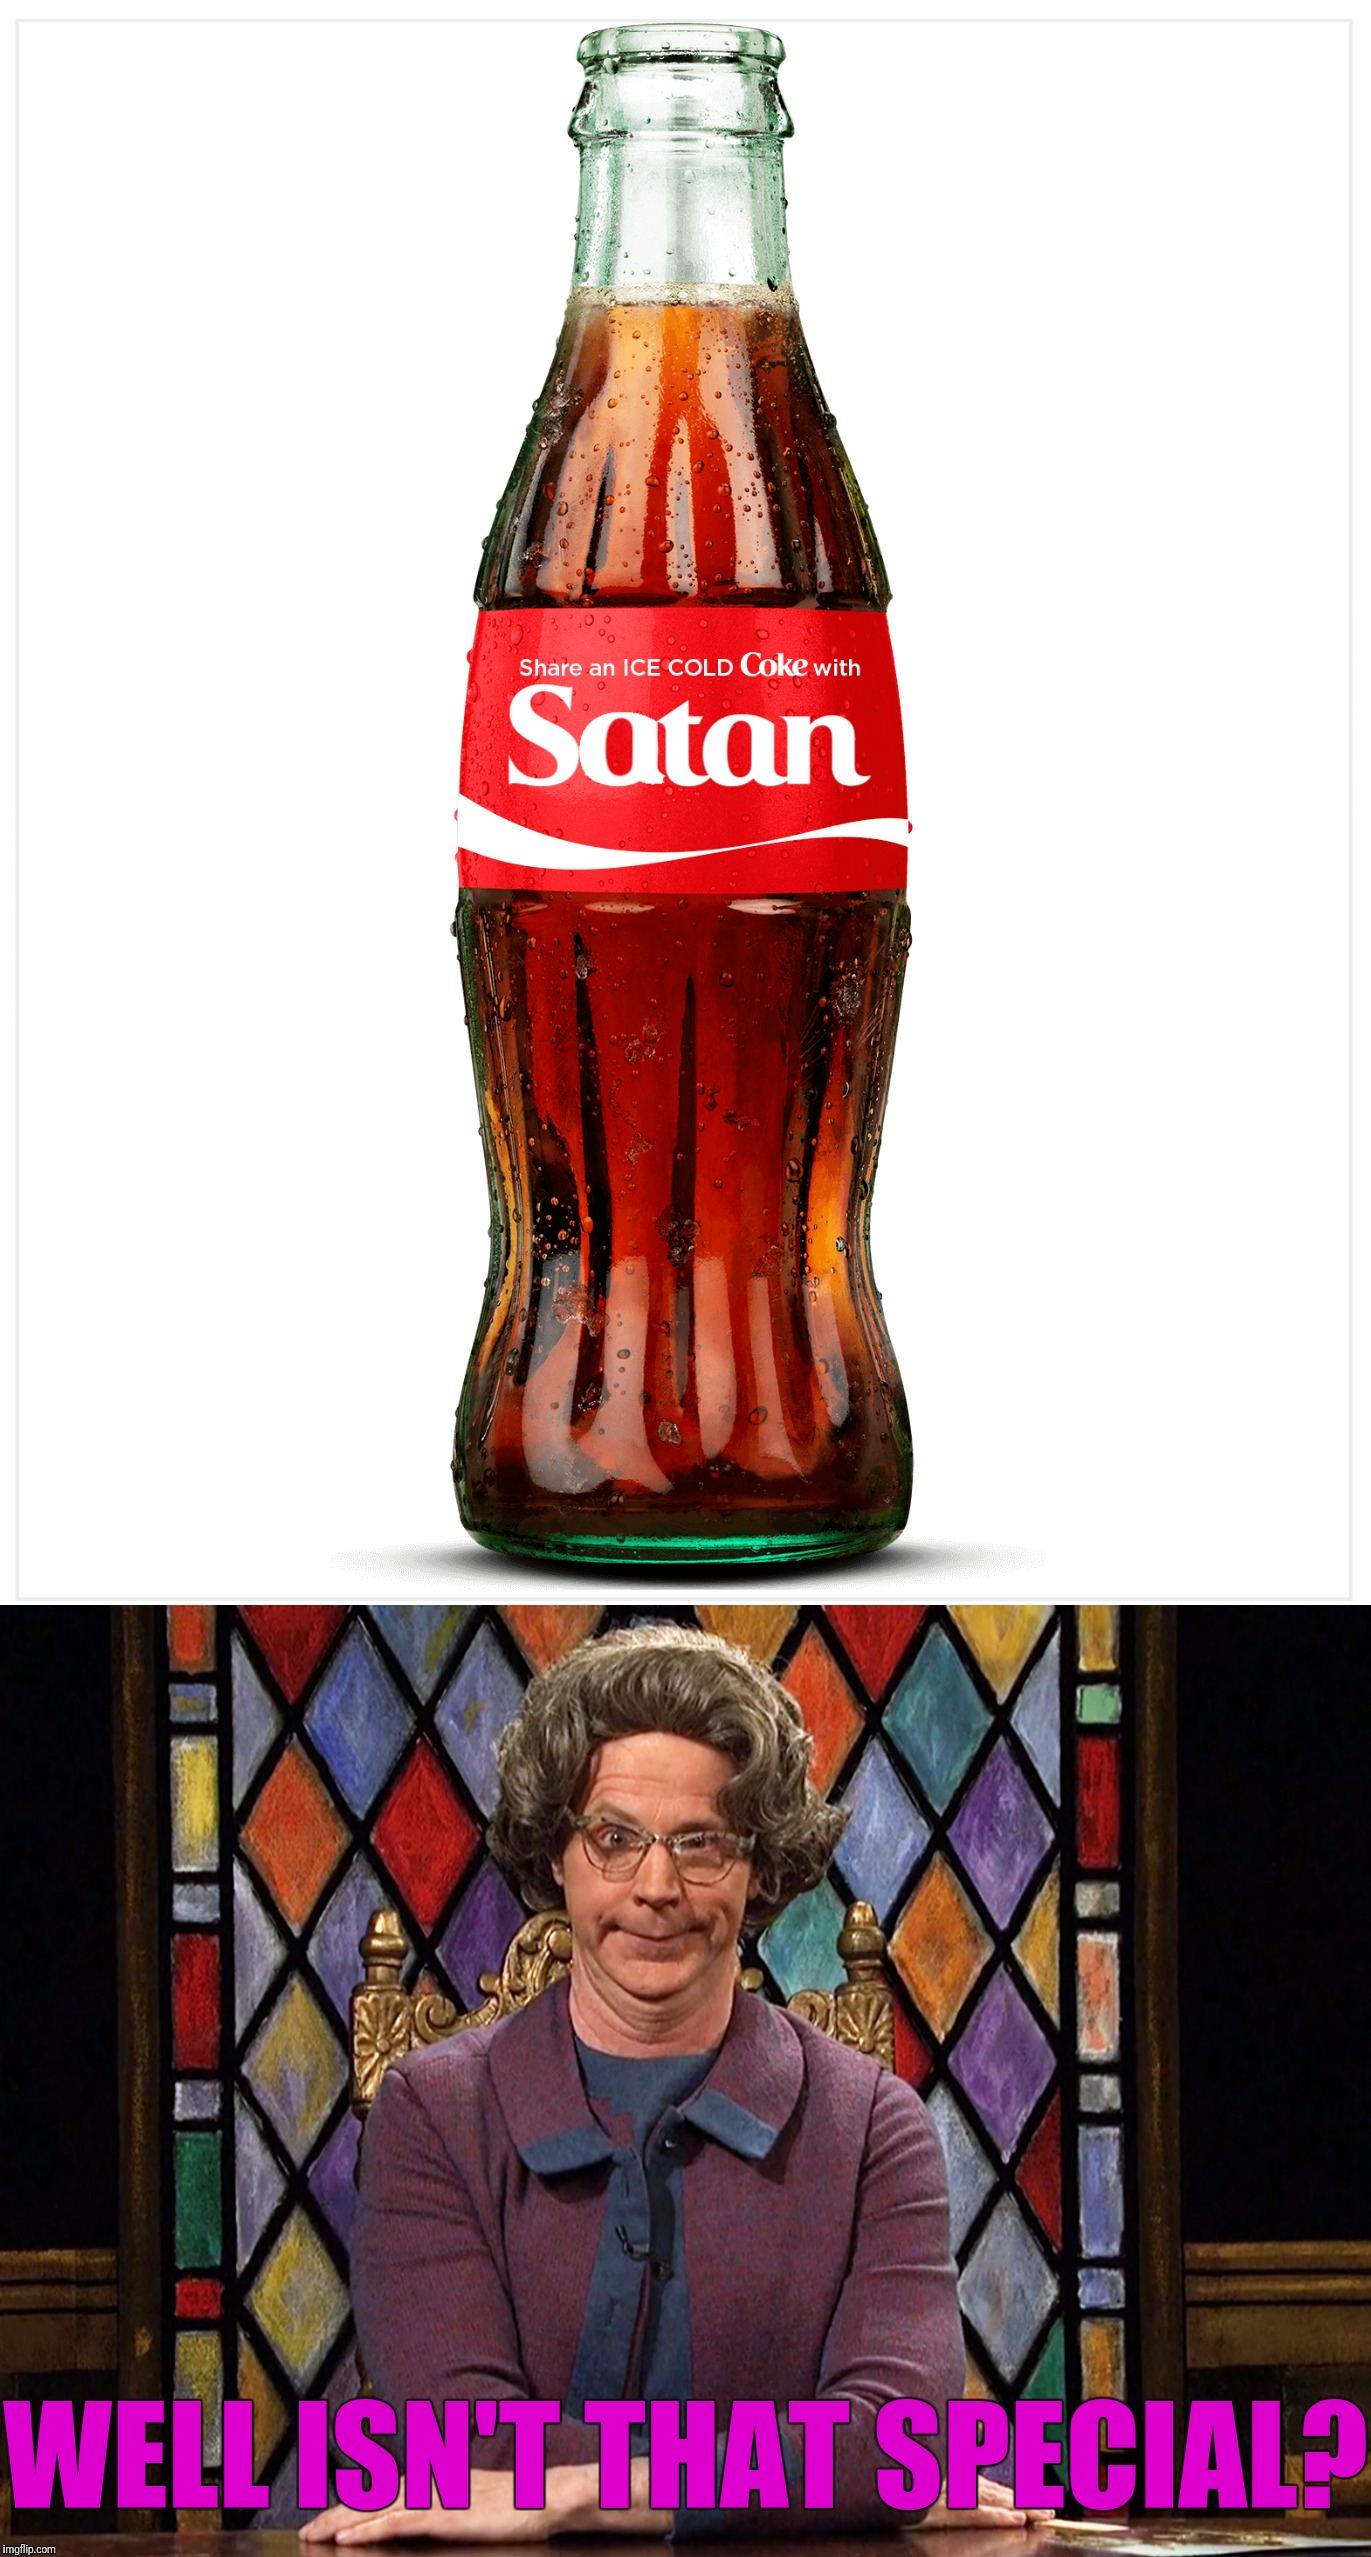 Share a Coke with Church Lady | WELL ISN'T THAT SPECIAL? | image tagged in memes,snl,share a coke with,church lady,satan | made w/ Imgflip meme maker